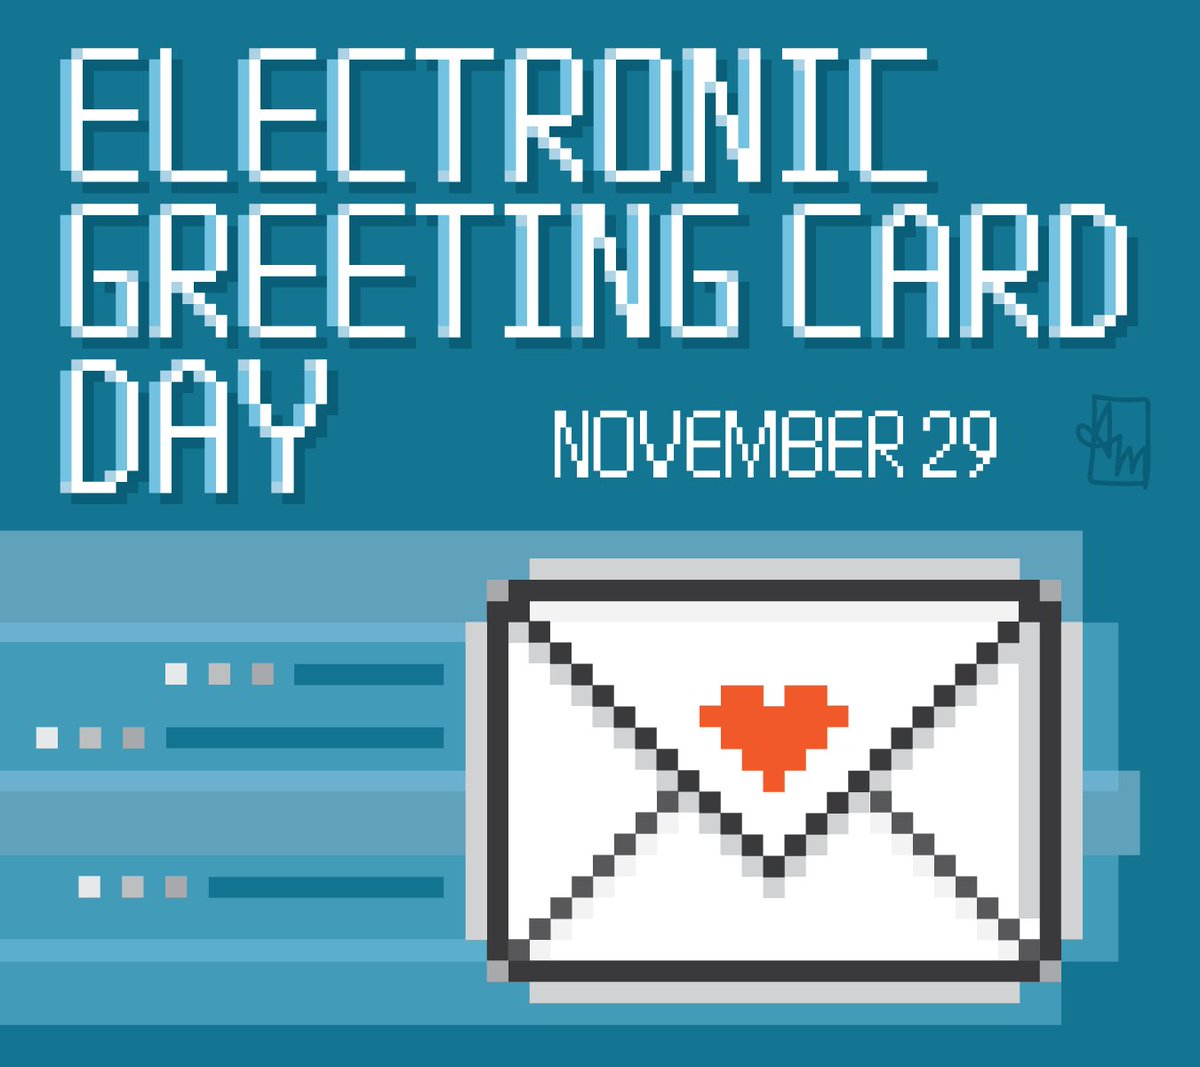 Electronicgreetingcardday Hashtag On Twitter